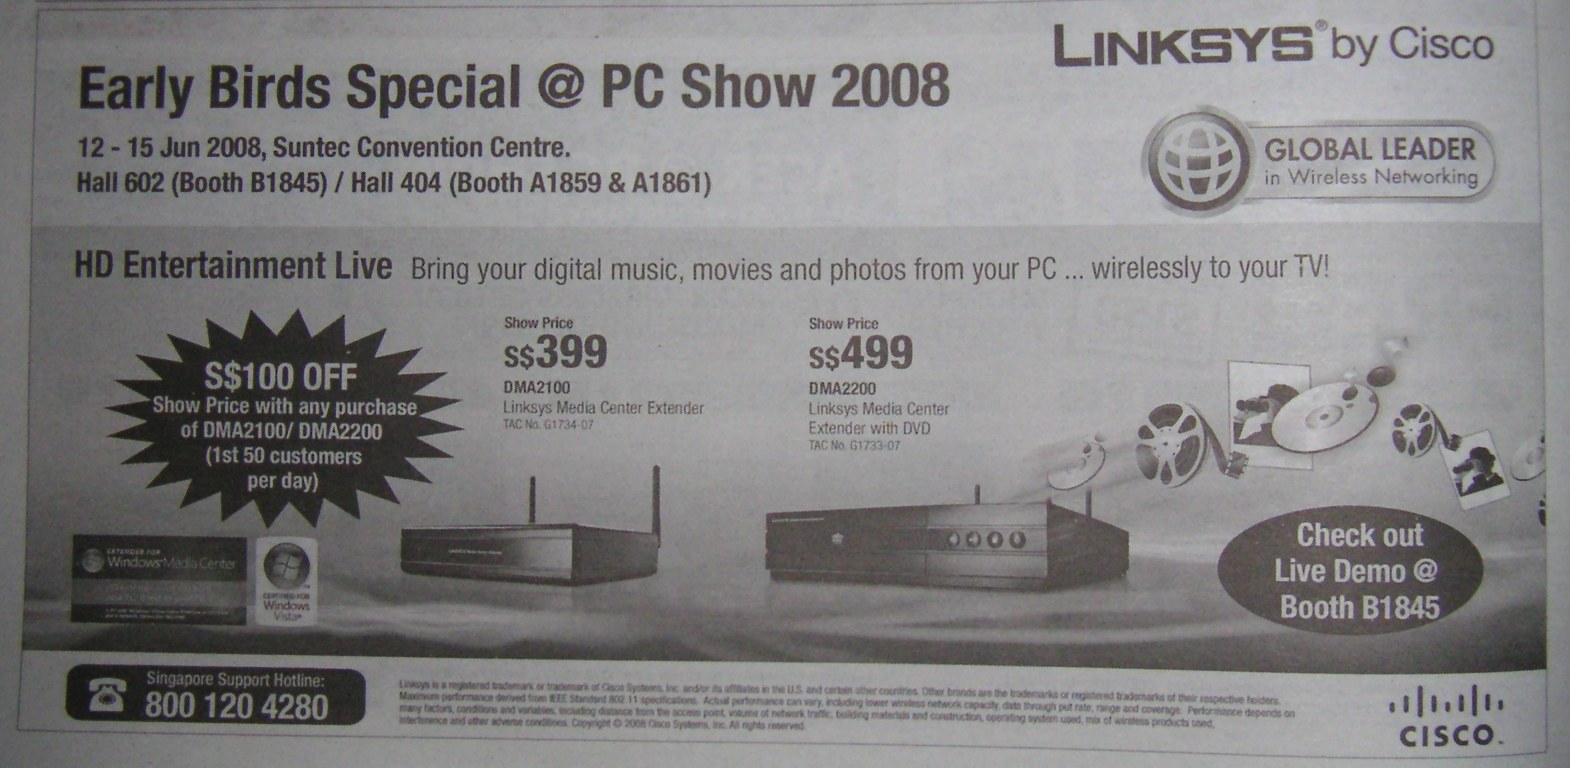 PC Show 2008 price list image brochure of Linksys Media Centers